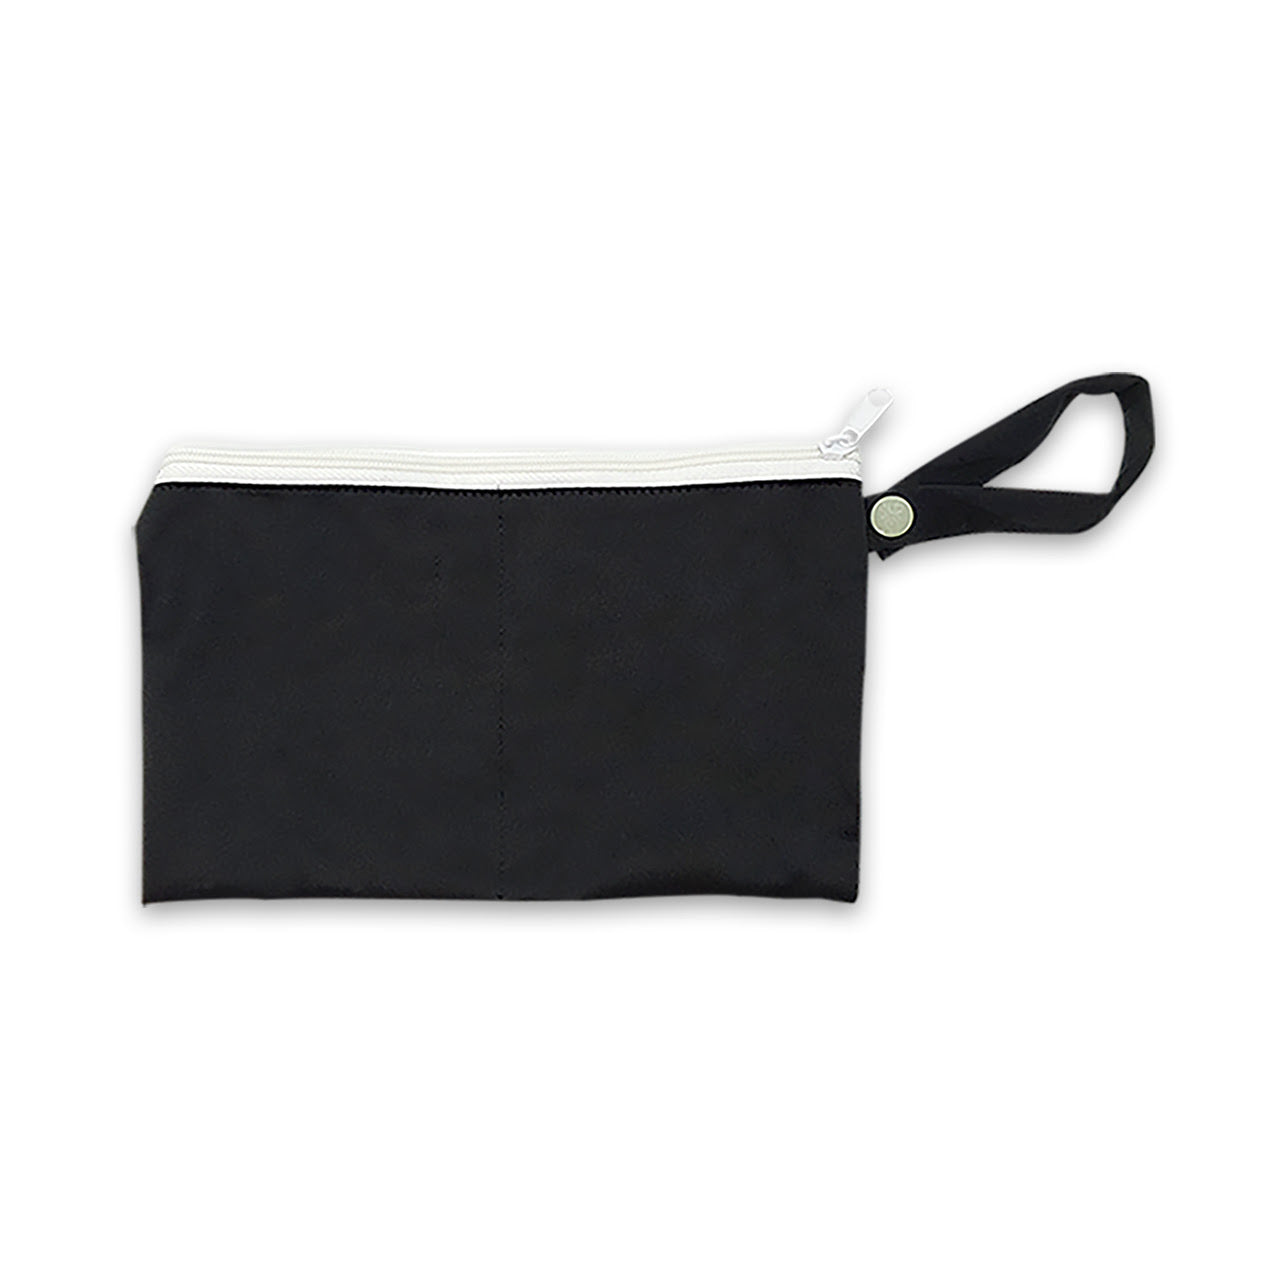 Bambaw Reusable Sanitary Pouch